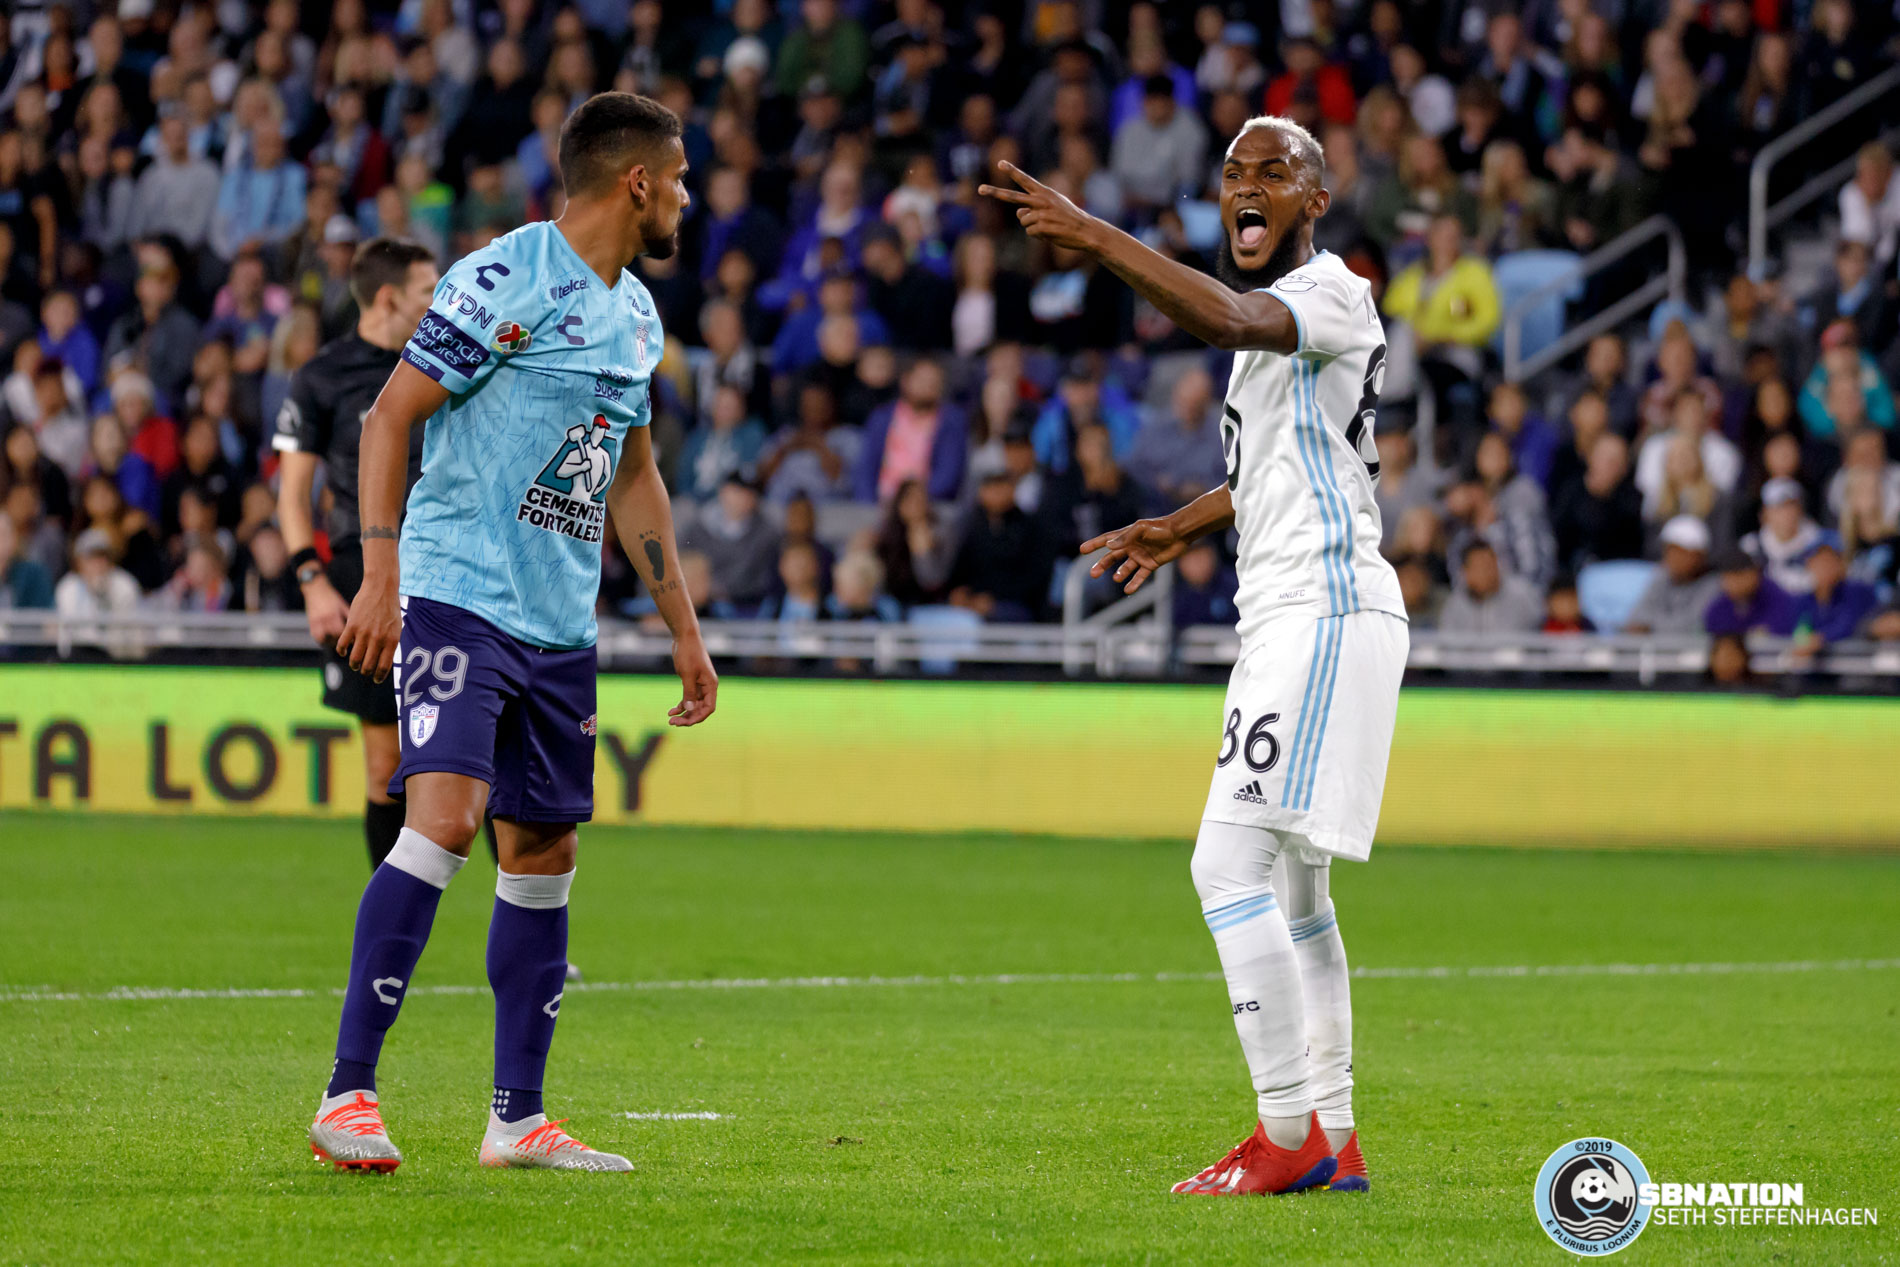 September 7, 2019 - Saint Paul, Minnesota, United States -  Minnesota United defender Wilfried Moimbé-Tahrat (86) reacts to pushing and shoving from Pachuca forward Franco Jara (29) during an international friendly at Allianz Field.